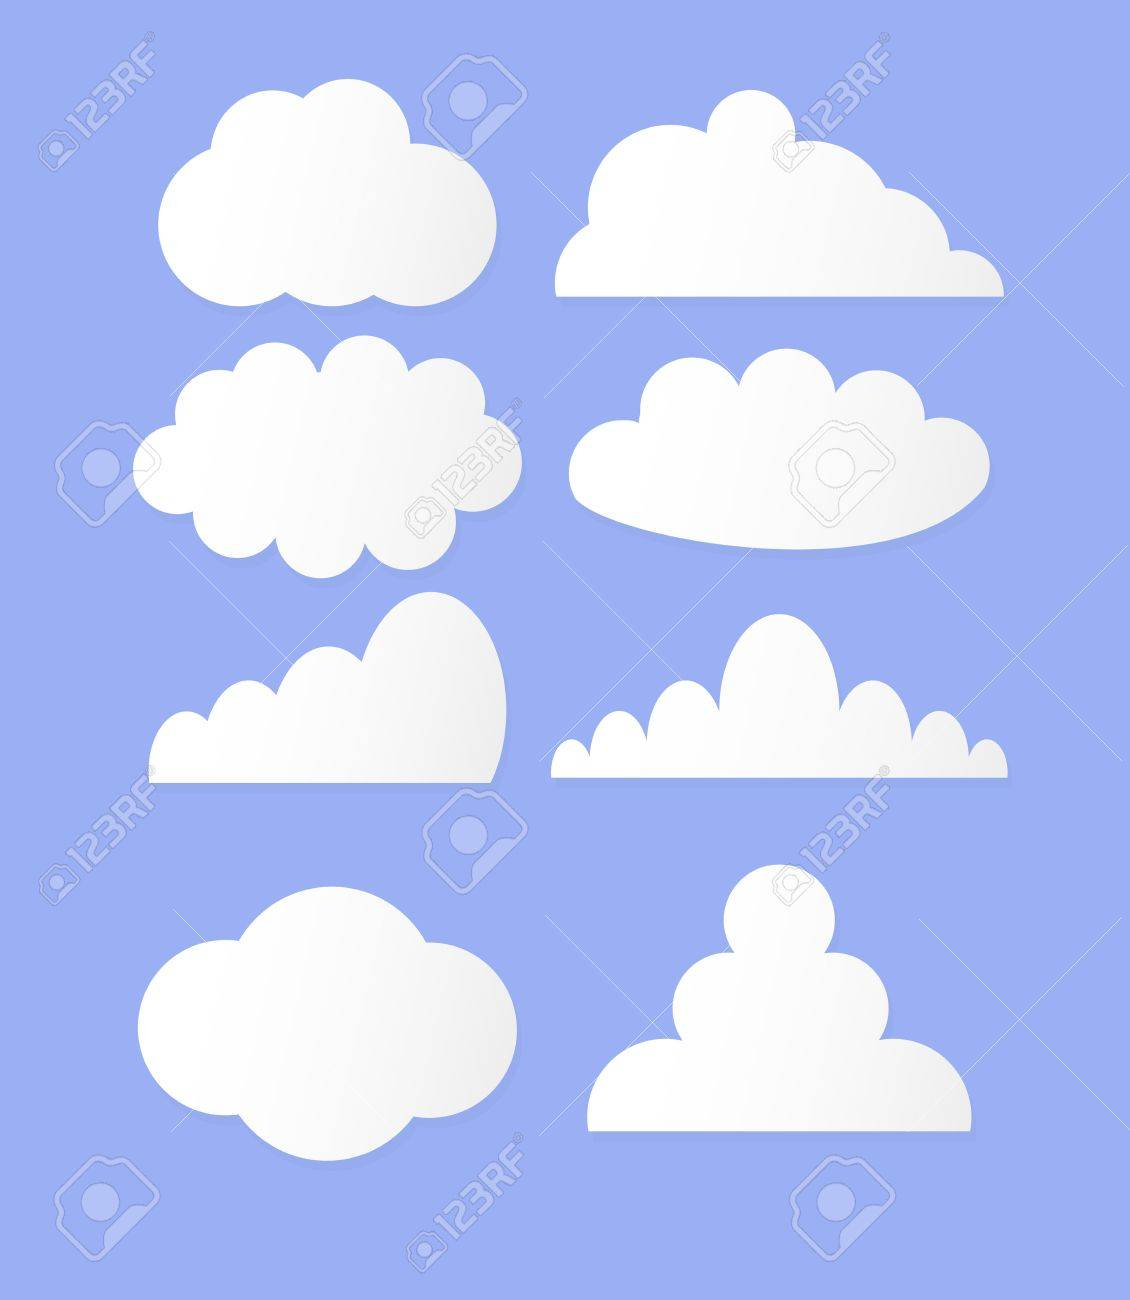 illustration of clouds collection Stock Vector - 15309328